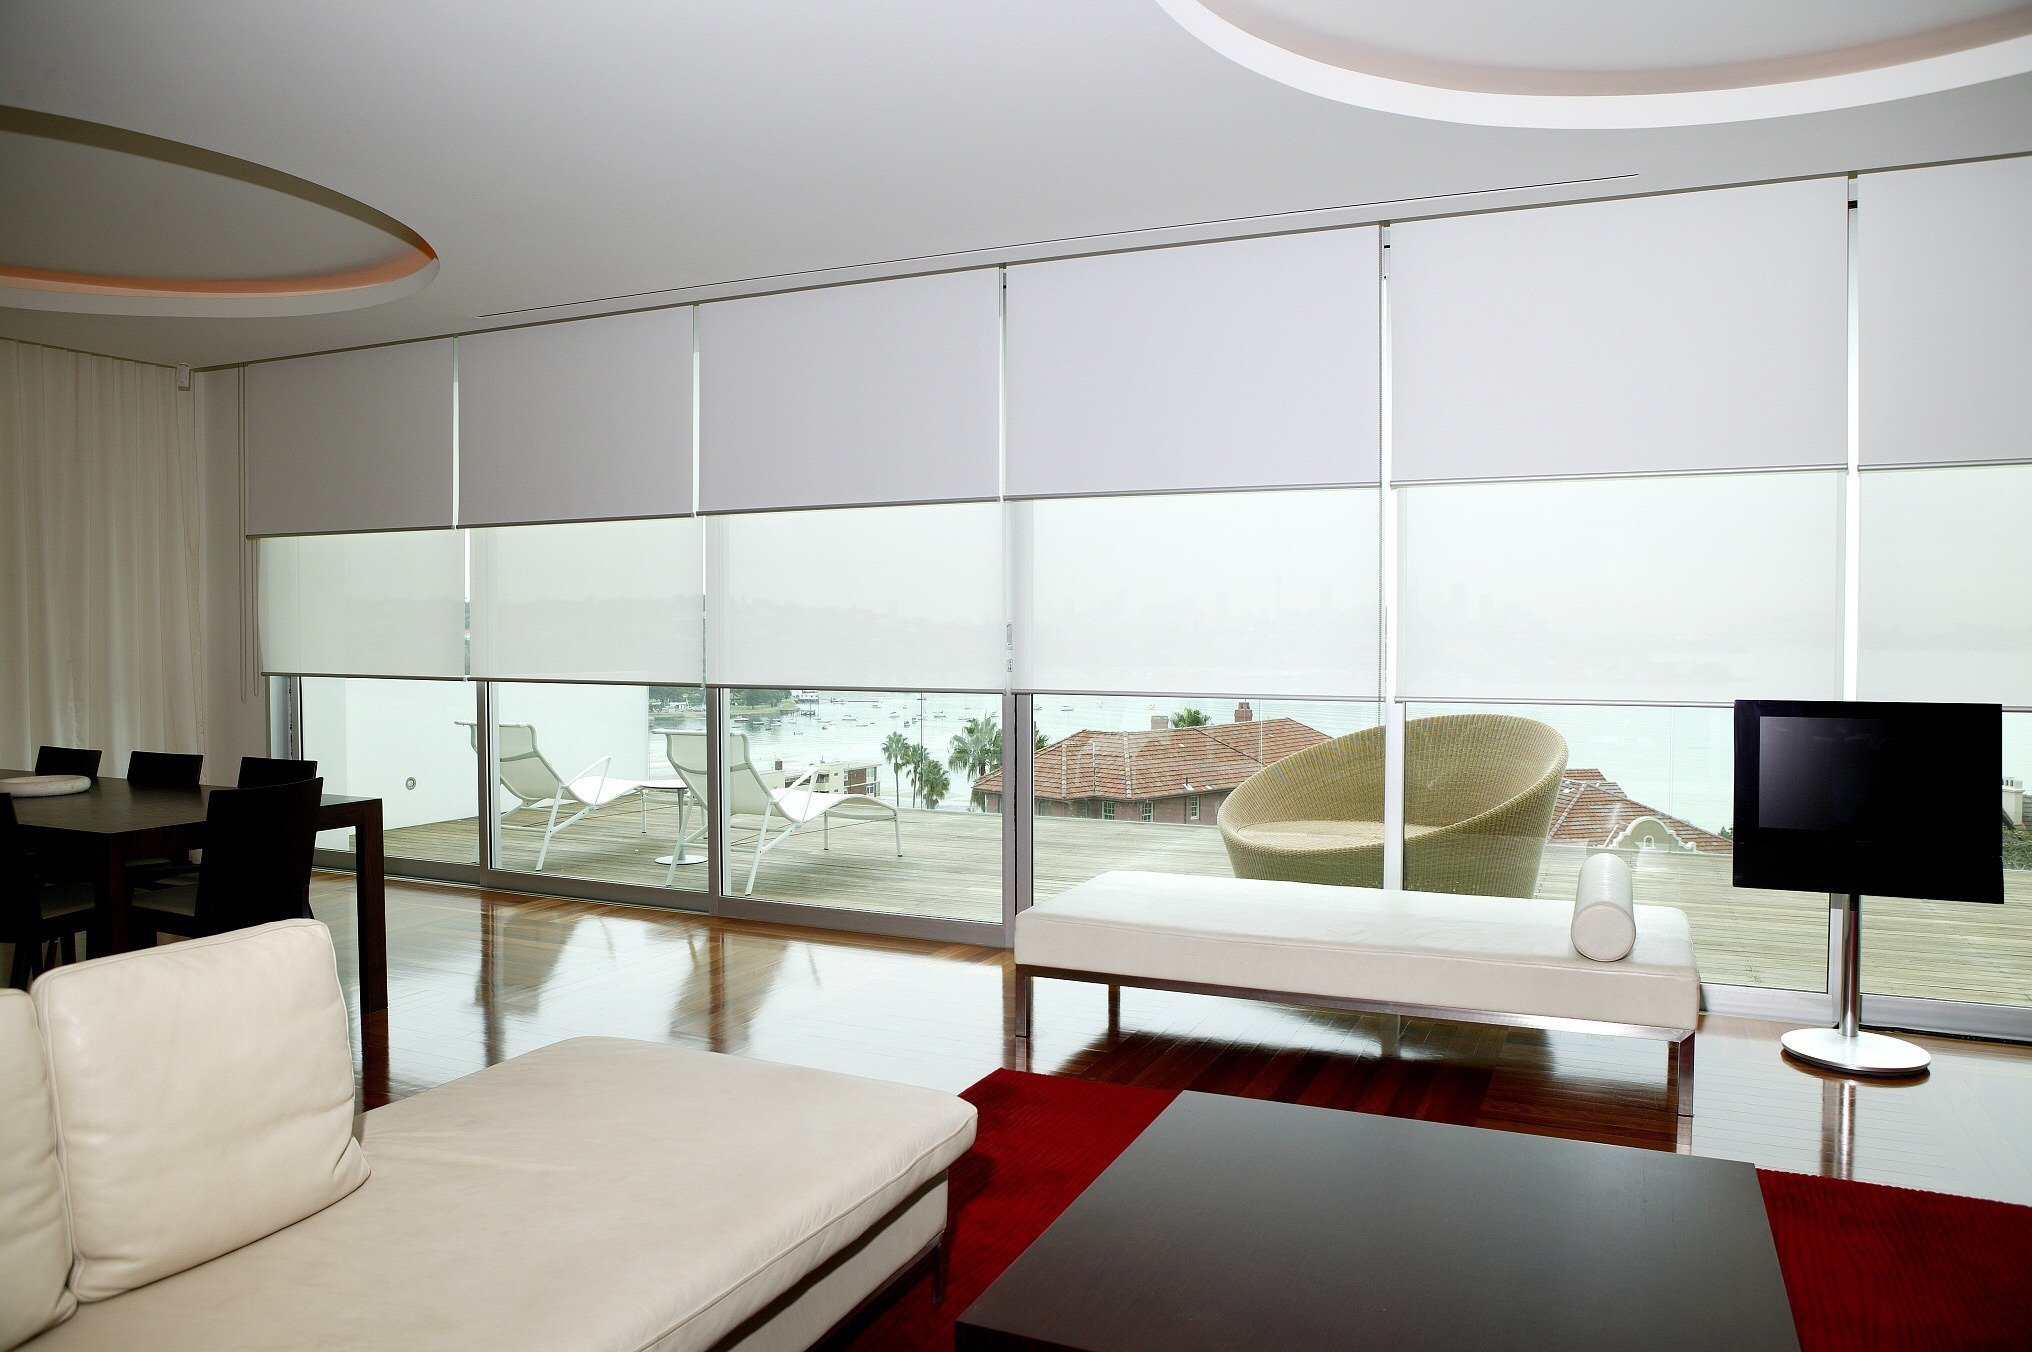 Dual Roller Blinds Ensure Your Privacy With Dual Blinds